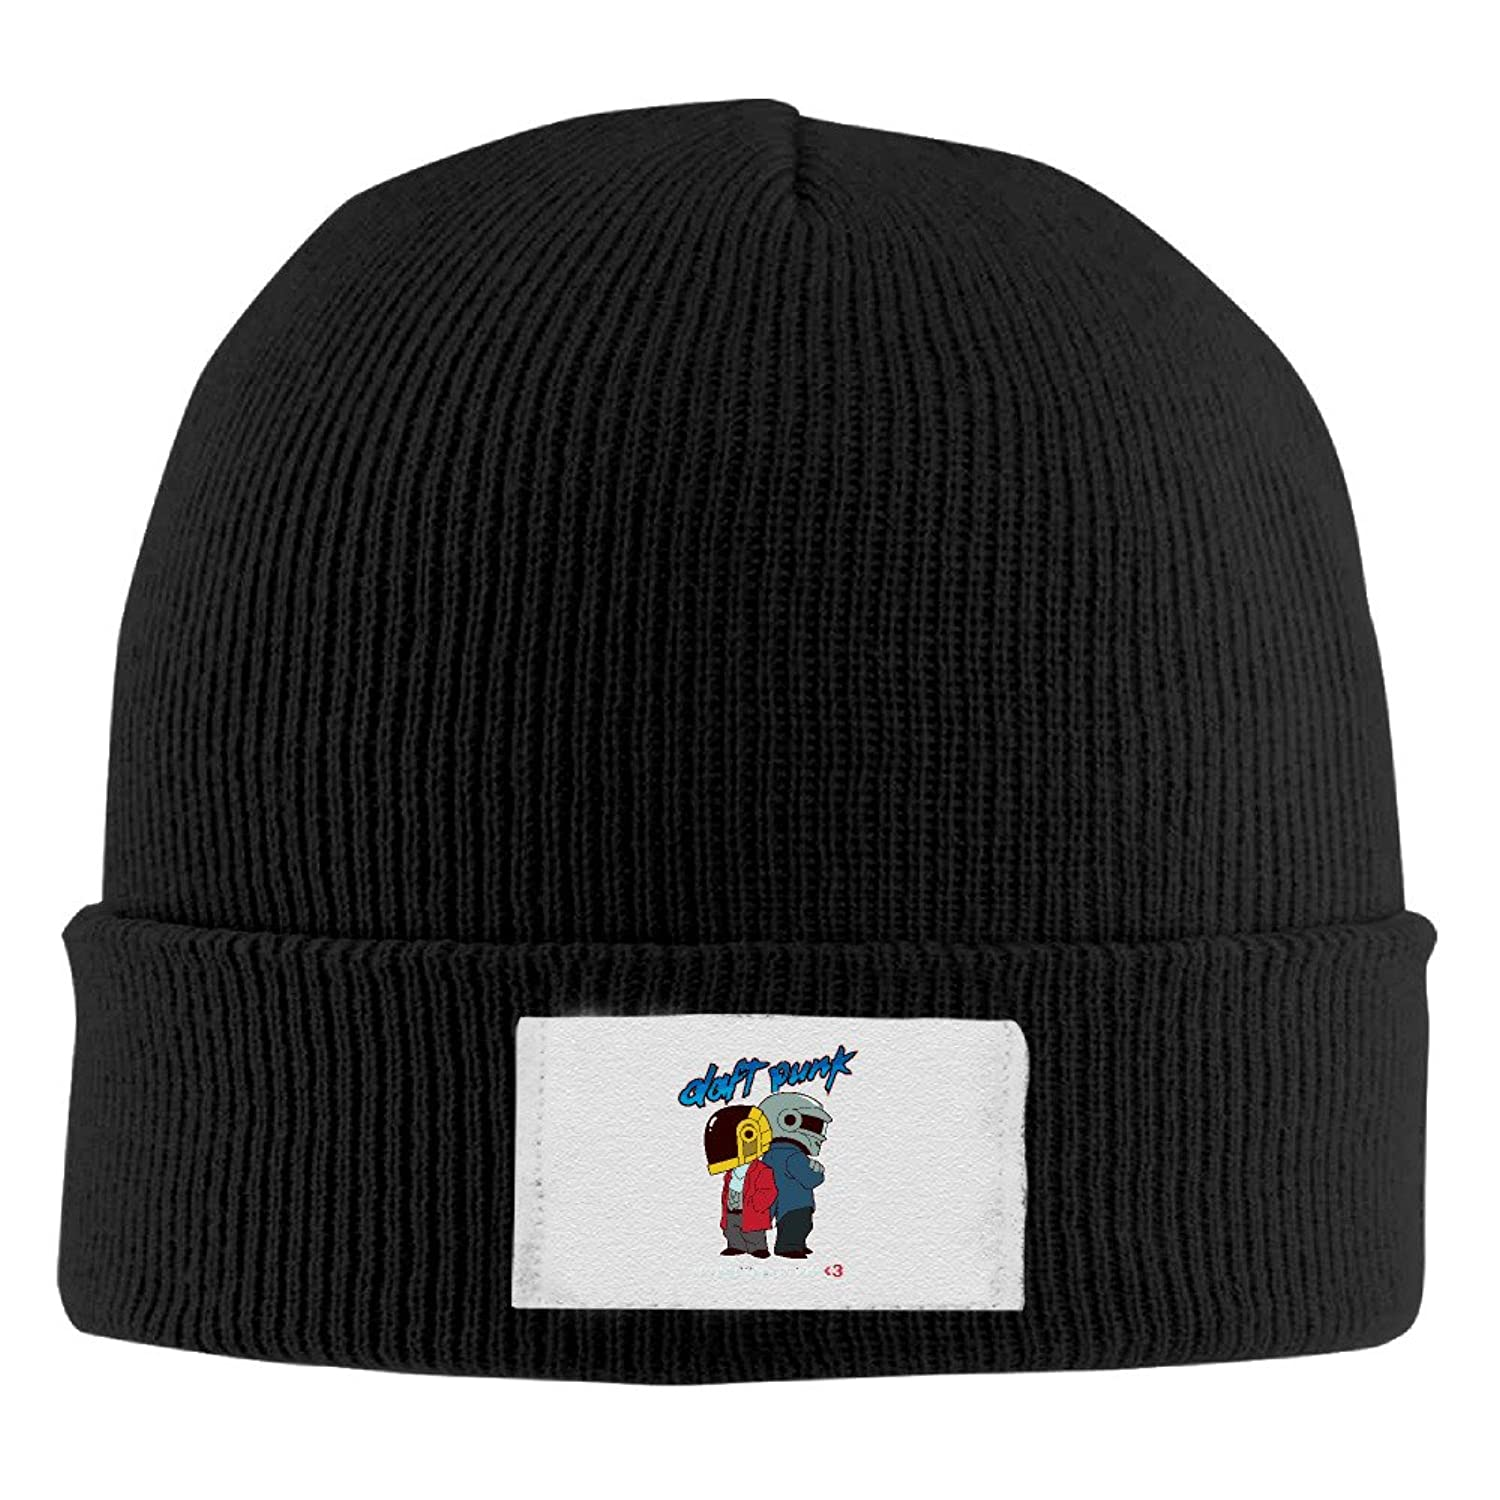 YFLLAY Daft Punk Band Logo Knit Cap Woolen Hat For Unisex